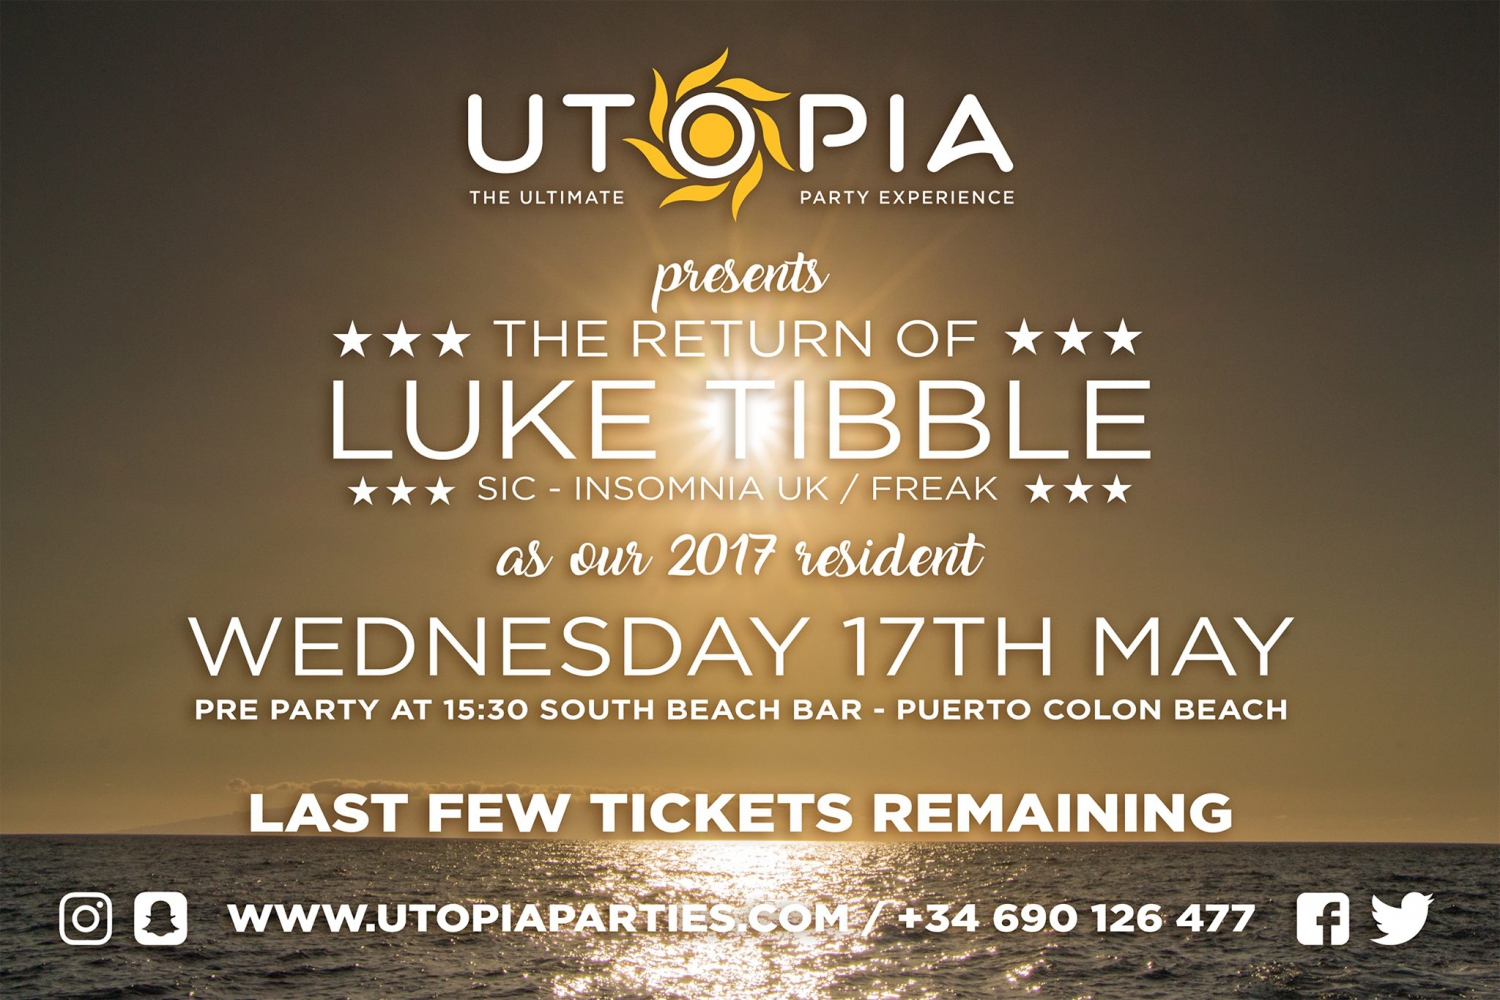 The Return of Luke Tibble at Utopia Boat Party